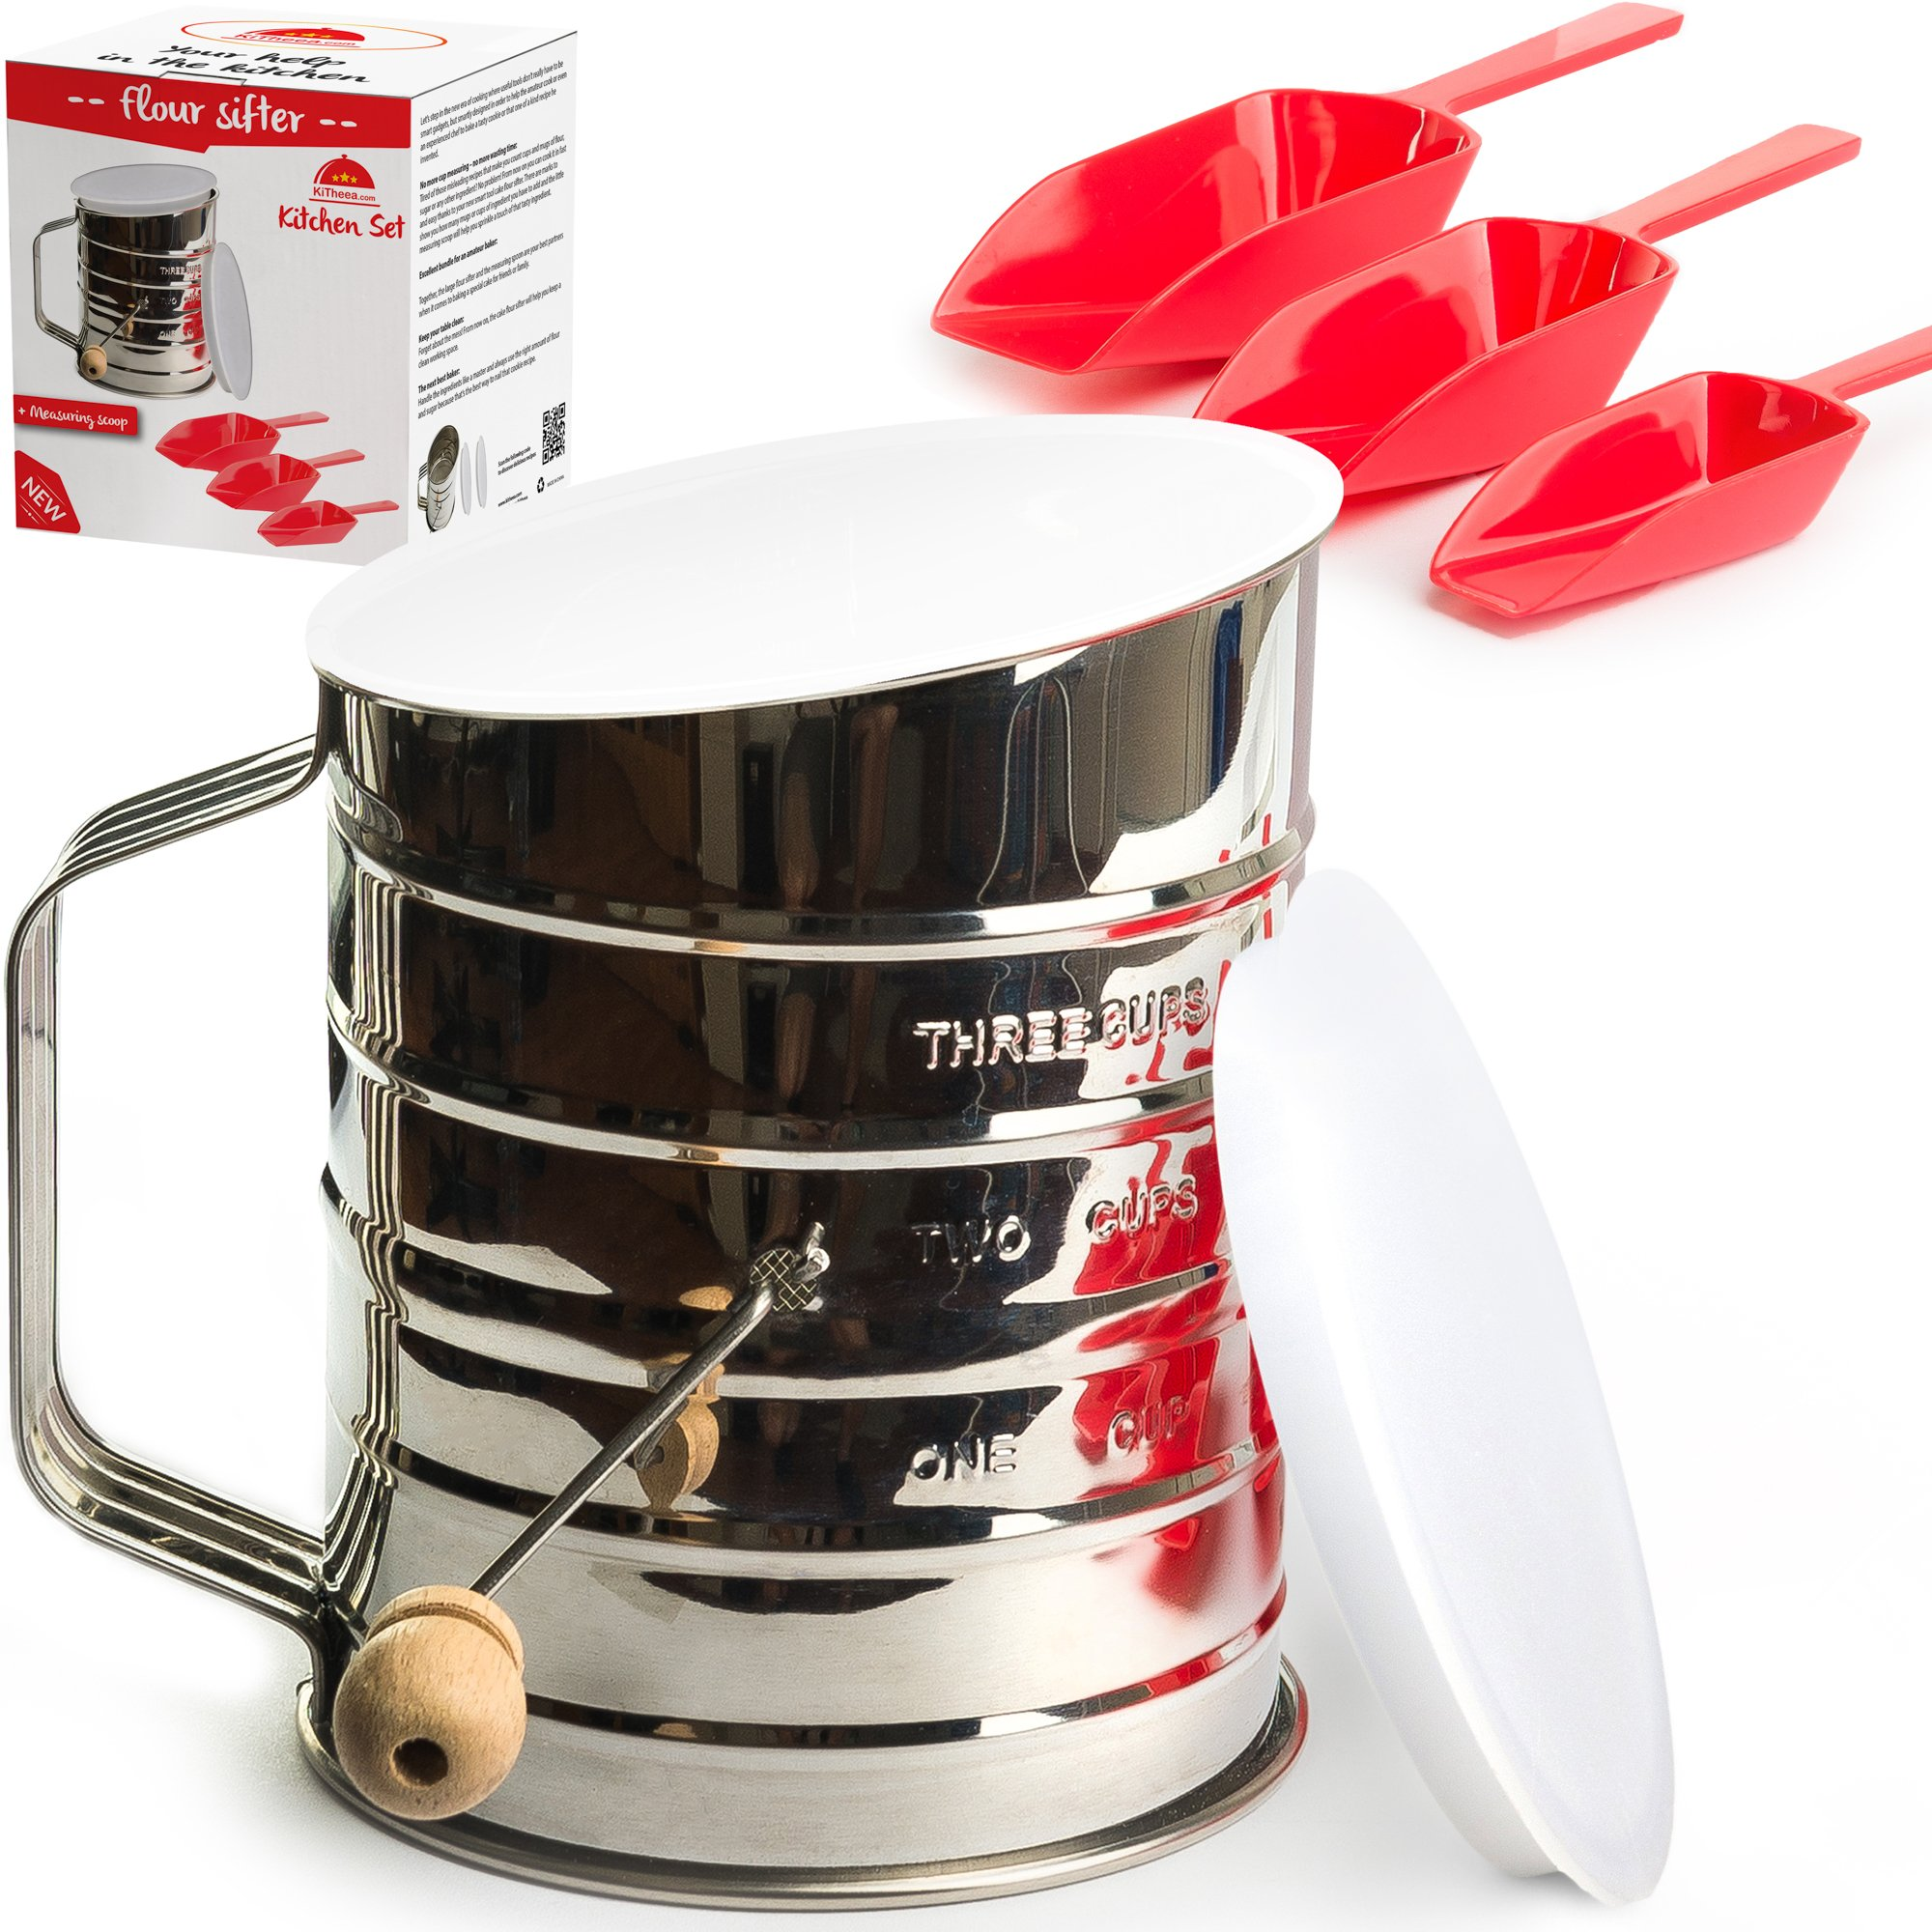 Kitheea Flour Sifter 3 Cup Stainless Steel - Perfect Sifter for Baking with Super Fine Almond Flour - Powdered Sugar Duster Sifter - Lid and Bottom Cover - Ebook Bonus by KiTheea